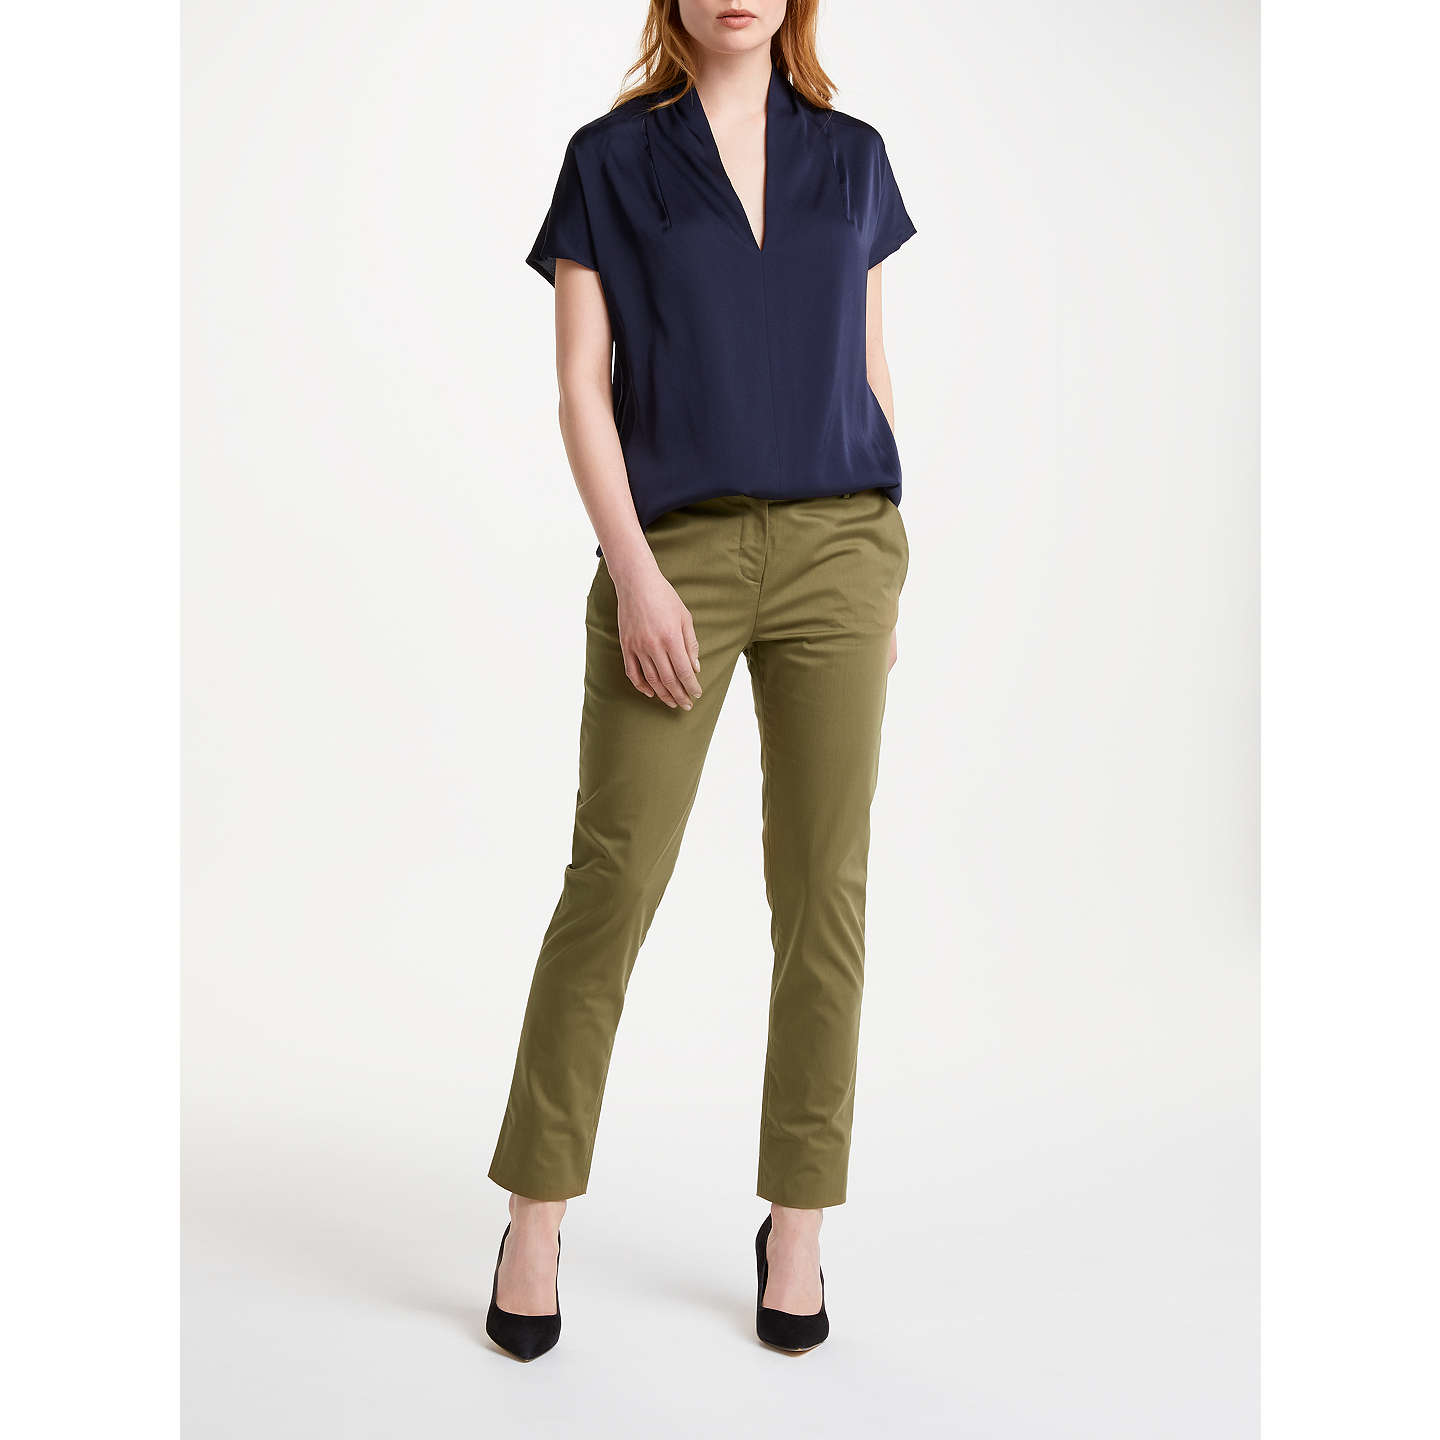 BuyWinser London Cotton Twill Straight Leg Trousers, Khaki, 8 Online at johnlewis.com